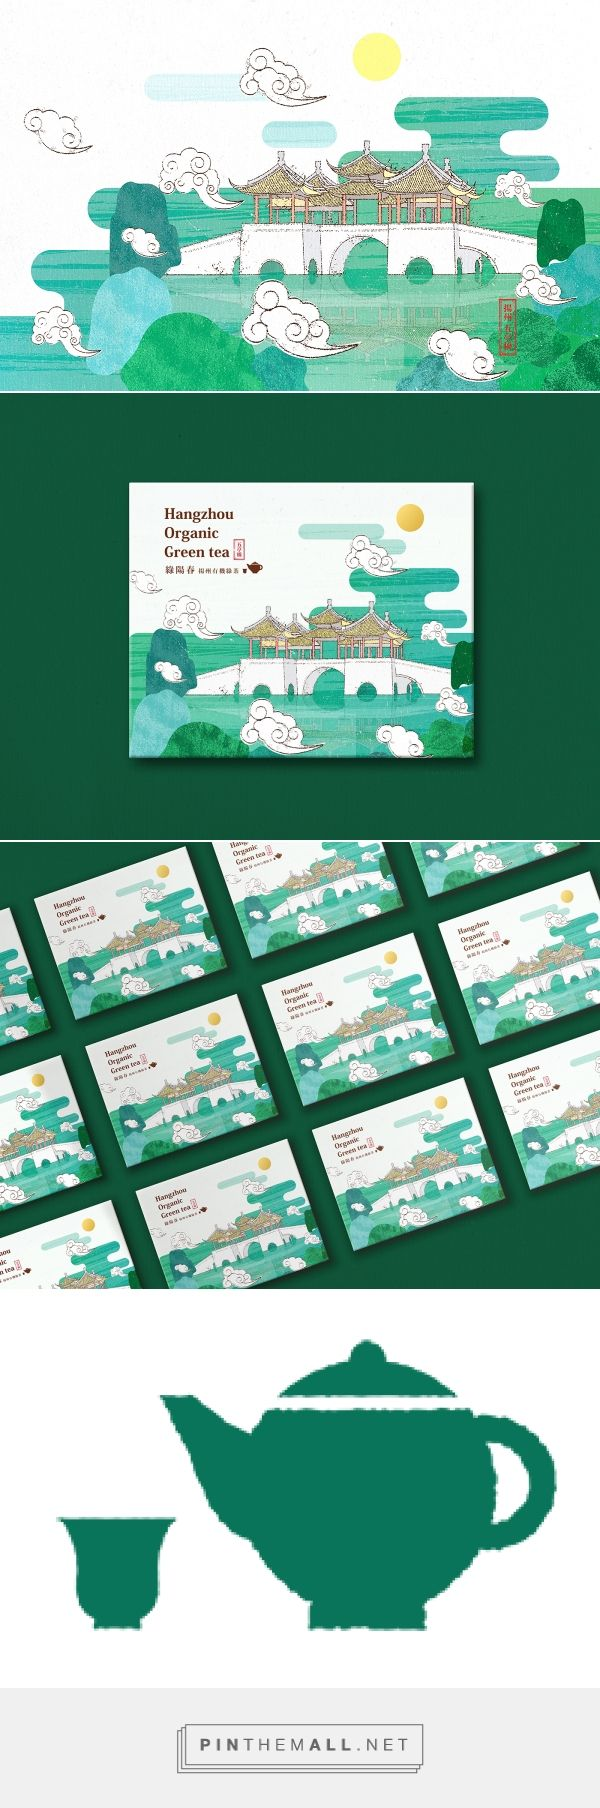 Graphic design, illustration and packaging for Yangzhou tea packaging on Behance by Hanna Chen Taichang, Taiwan curated by Packaging Diva PD. Let's have a cup of tea.